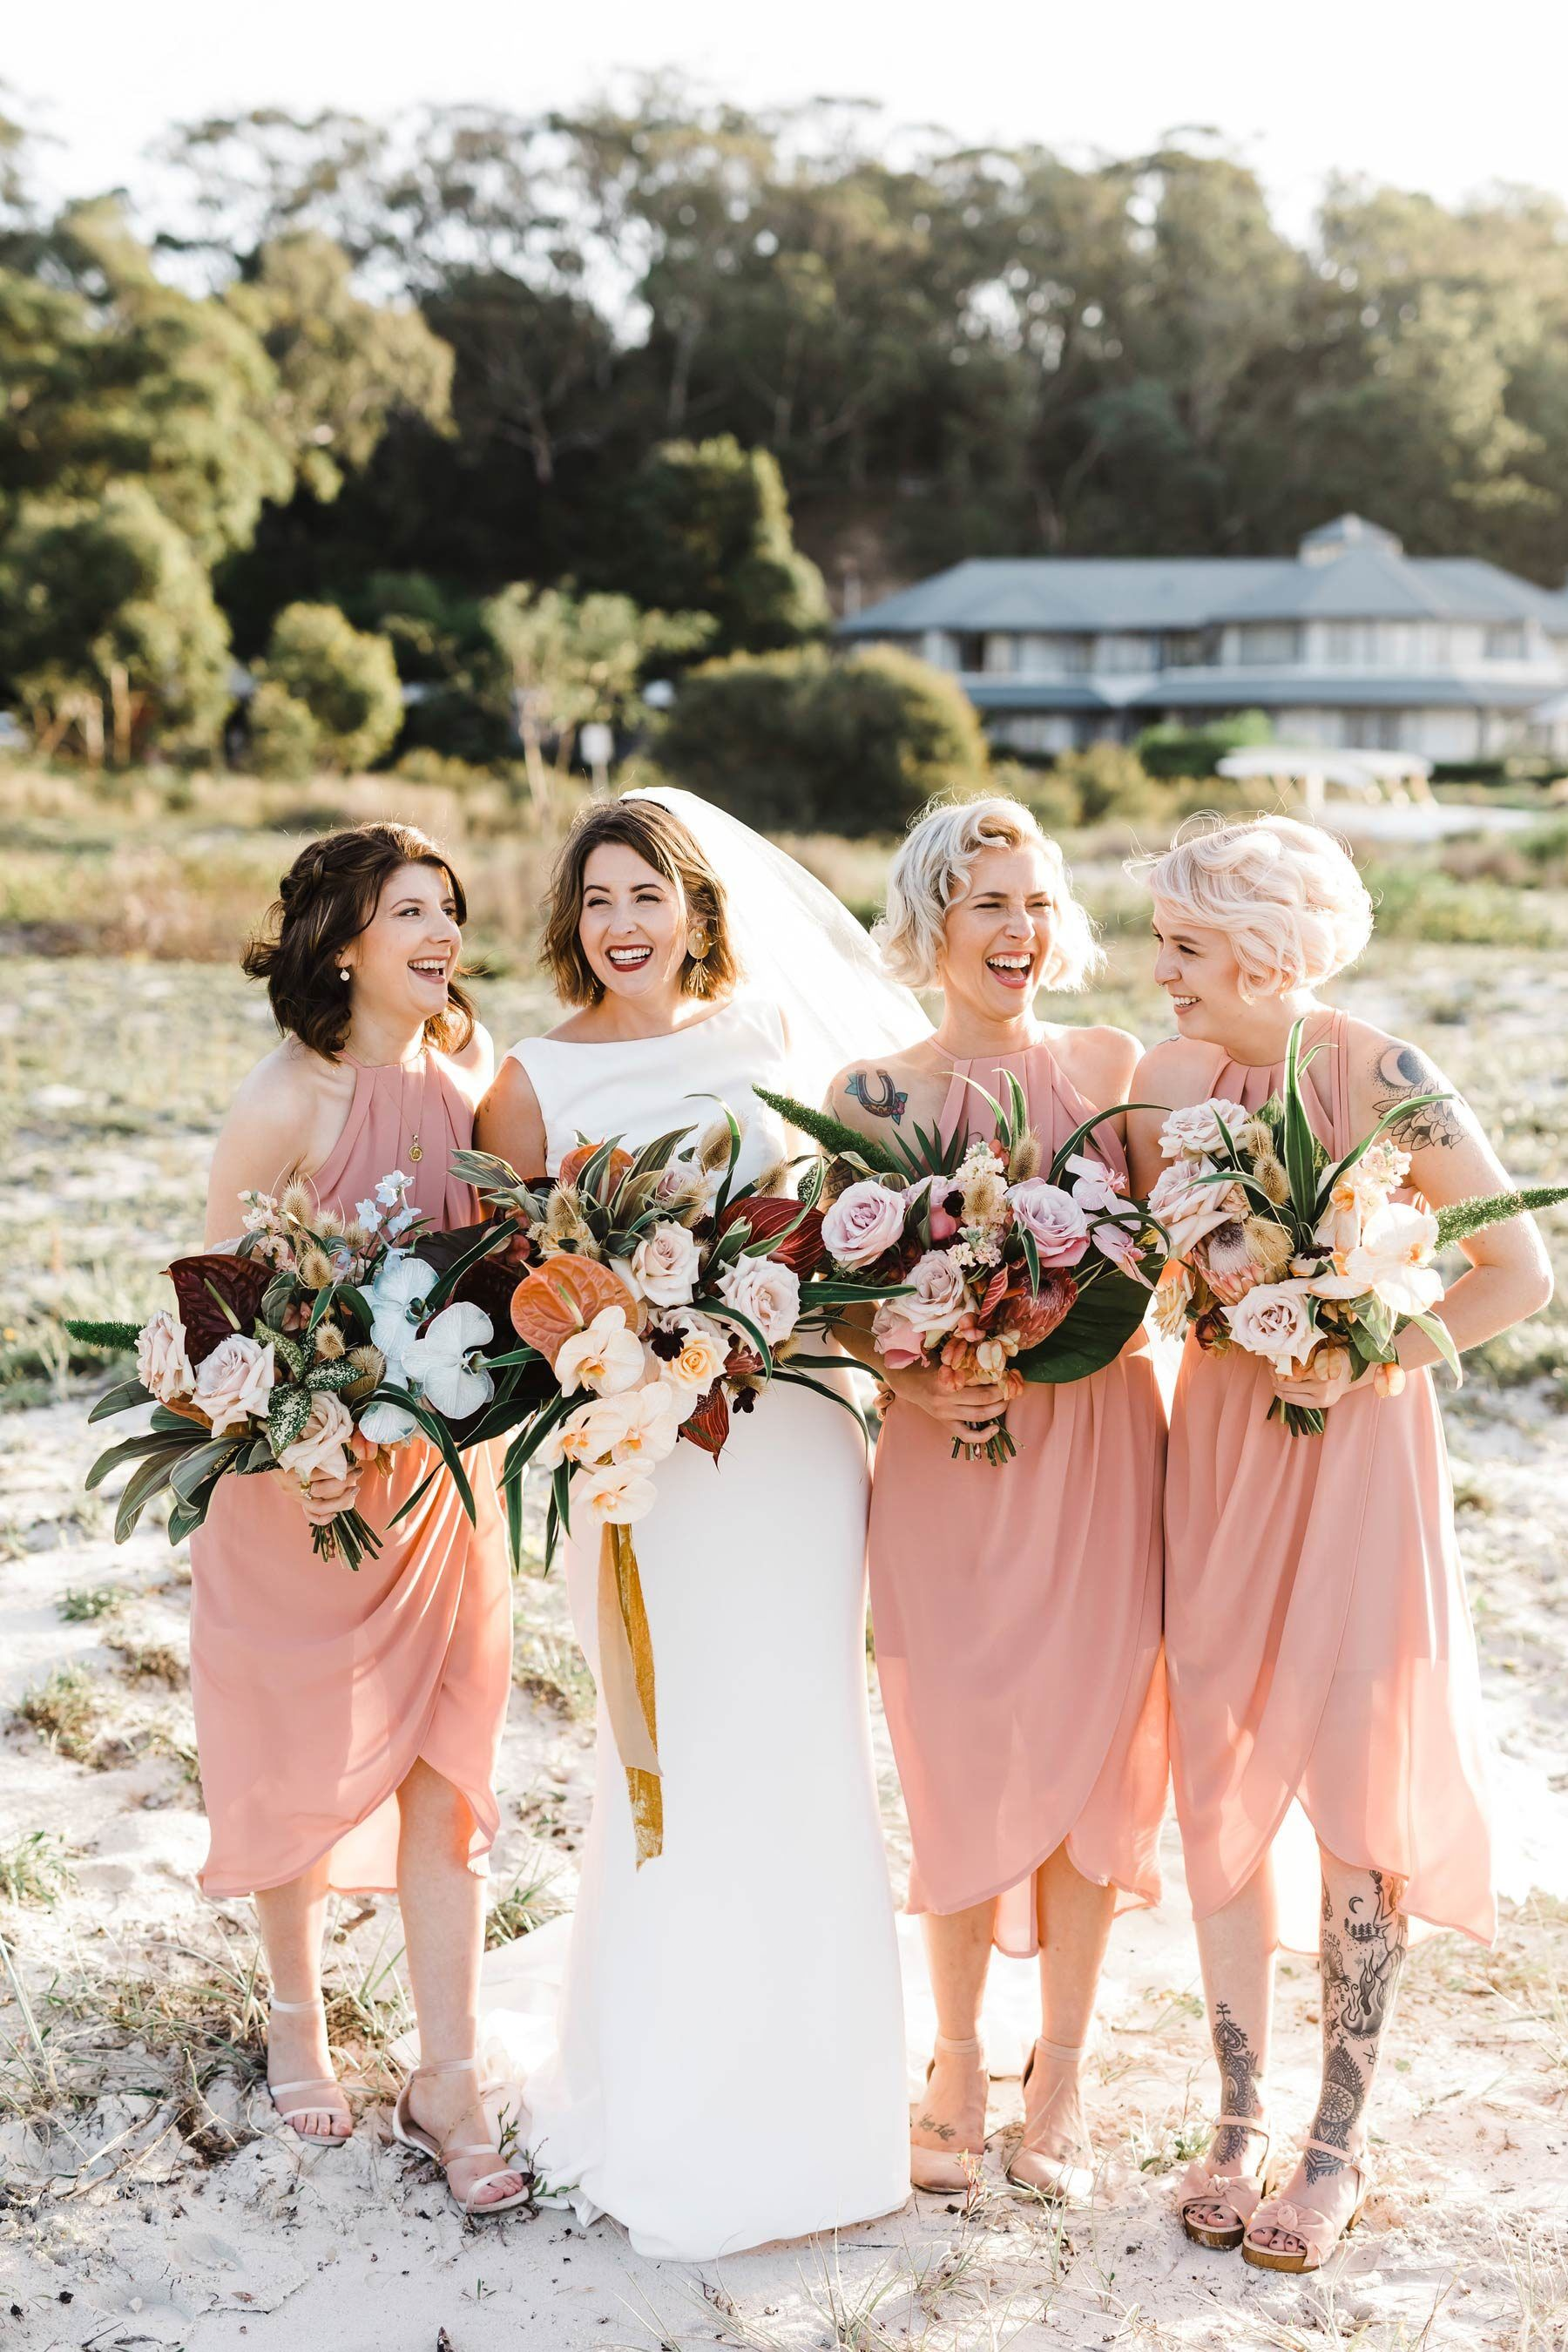 Must Have Bridesmaid Dresses Info To Target Today In 2020 Floral Bridesmaid Dresses Bridesmaid Dresses Australia Gorgeous Bridesmaid Dresses